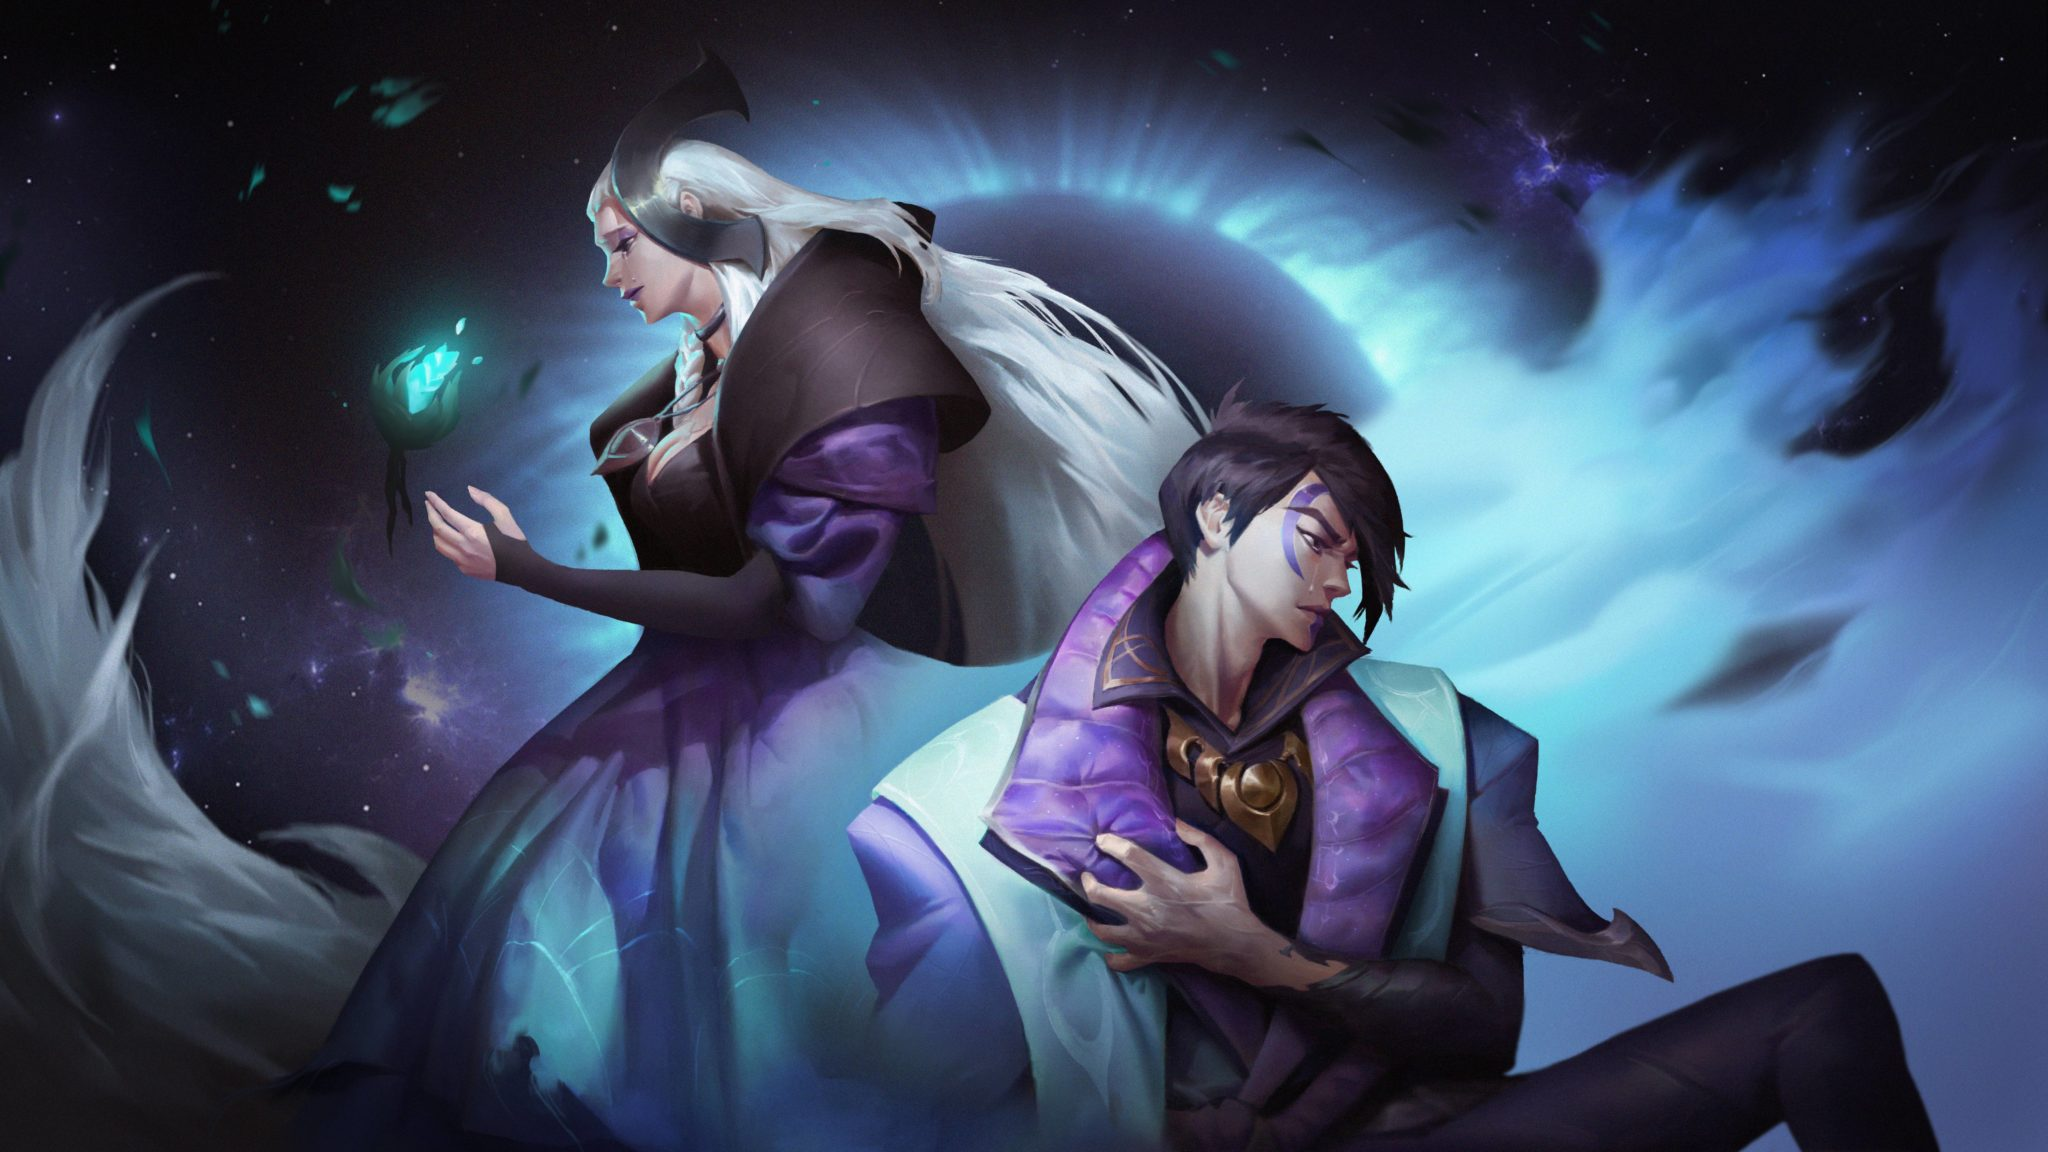 Aphelios and Alune in League of Legends